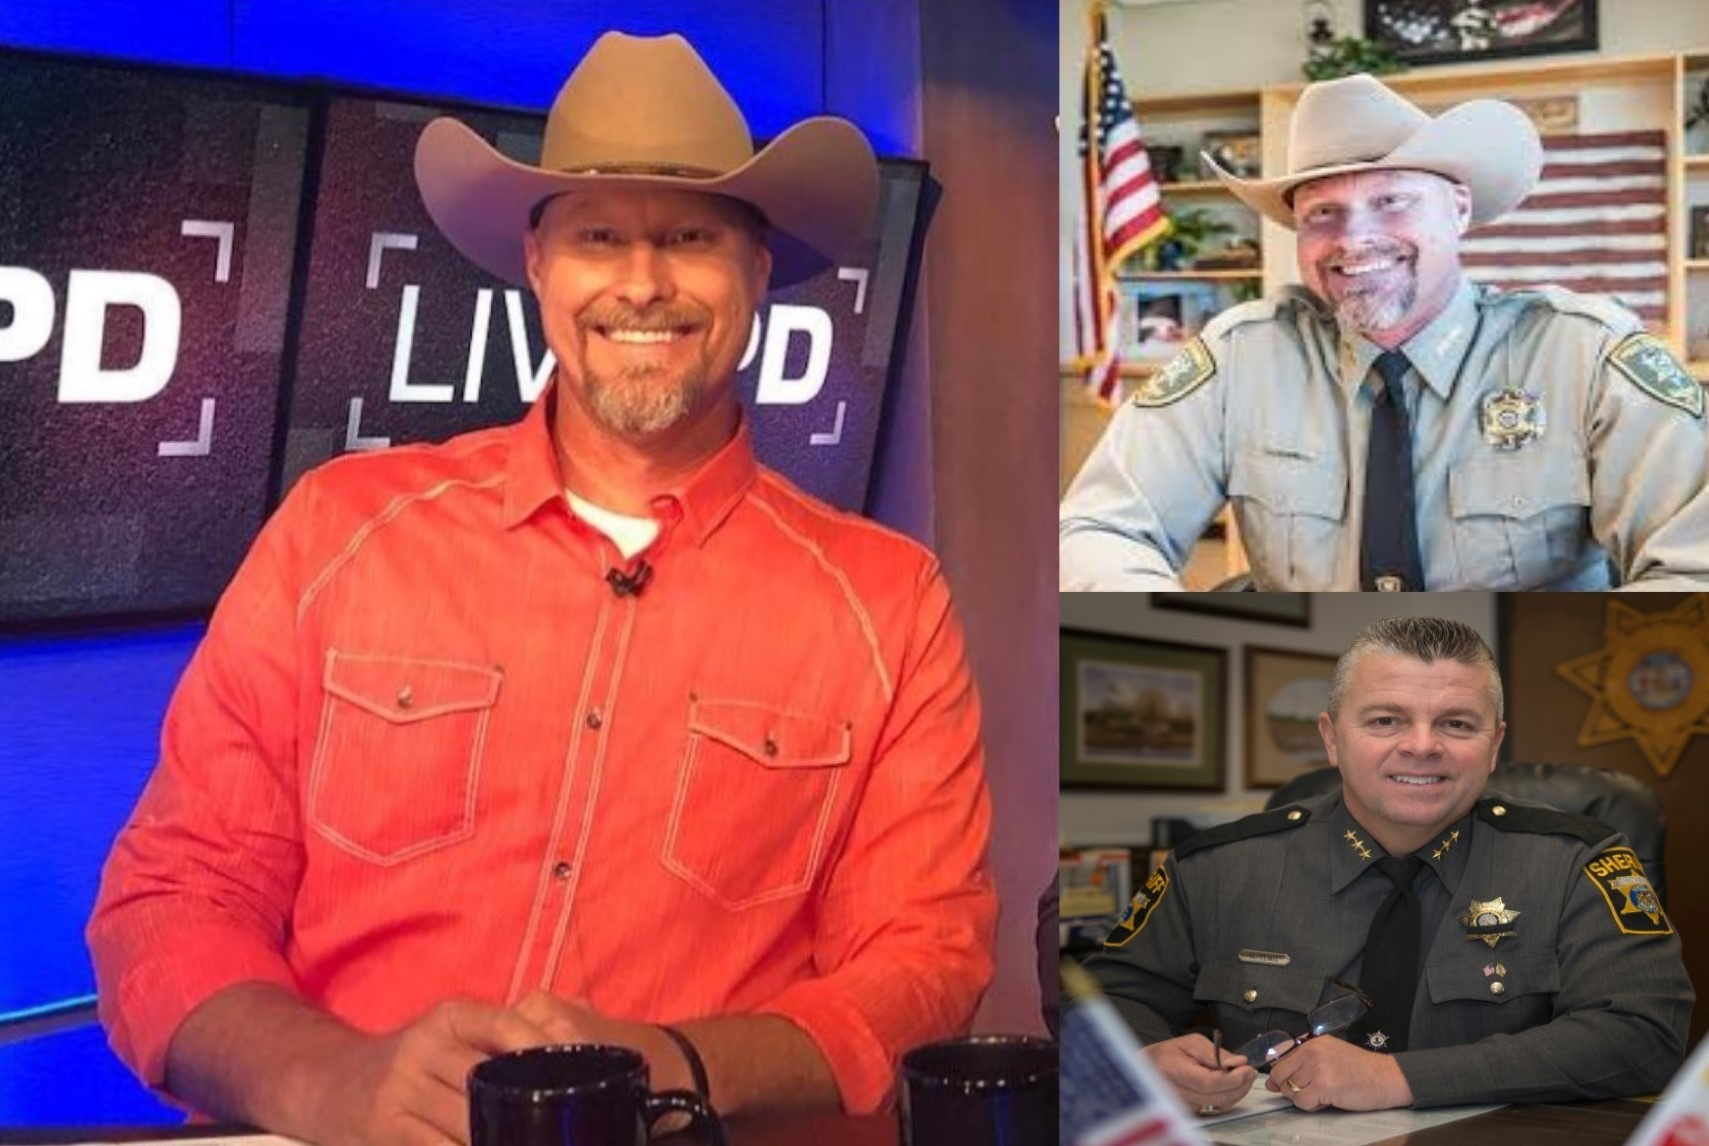 Sheriff Lamb and Sheriff Lewis